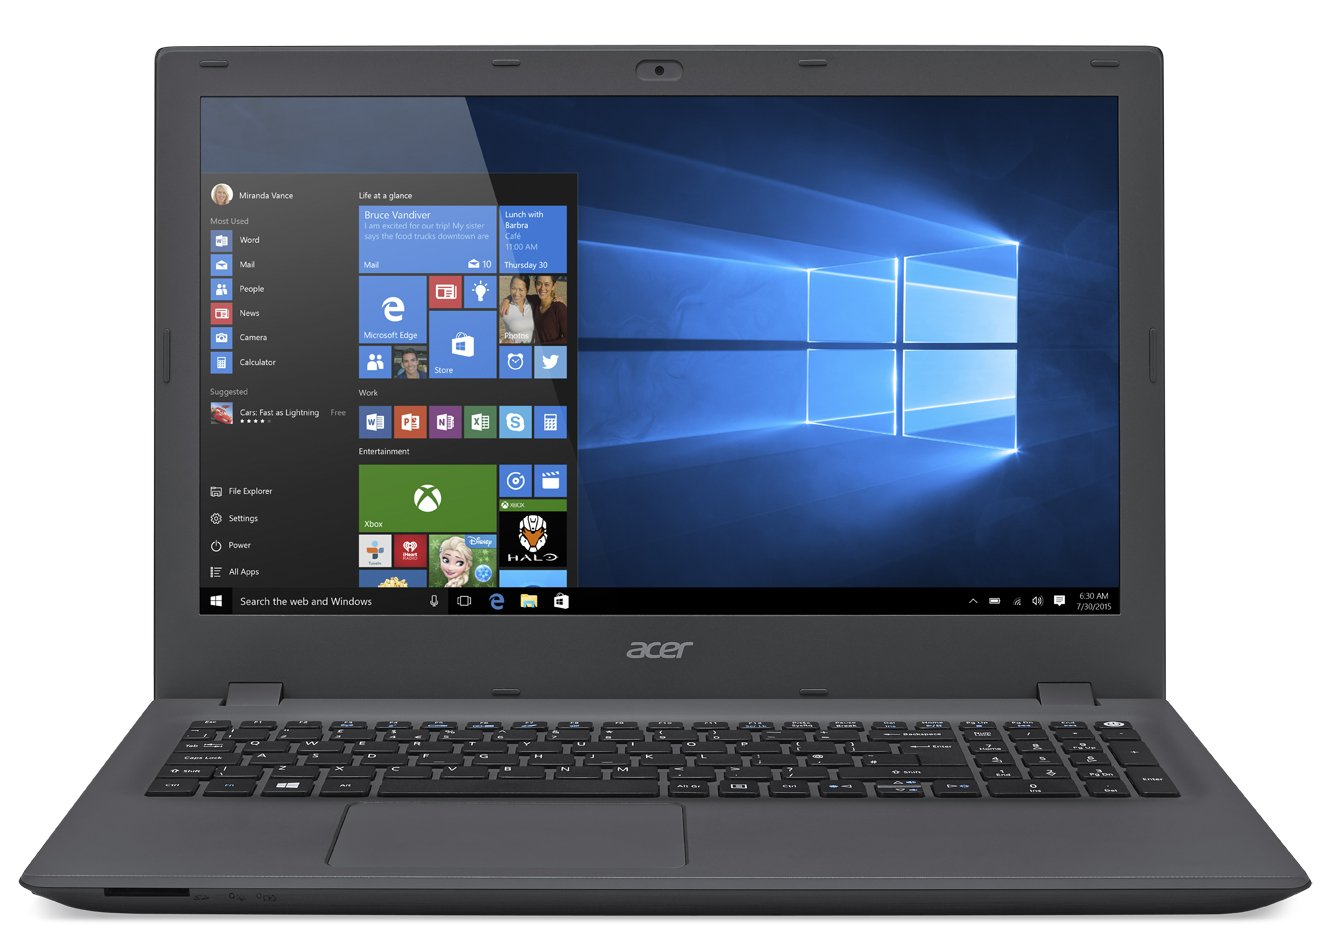 ACER ASPIRE E5-573T INTEL BLUETOOTH TREIBER WINDOWS XP